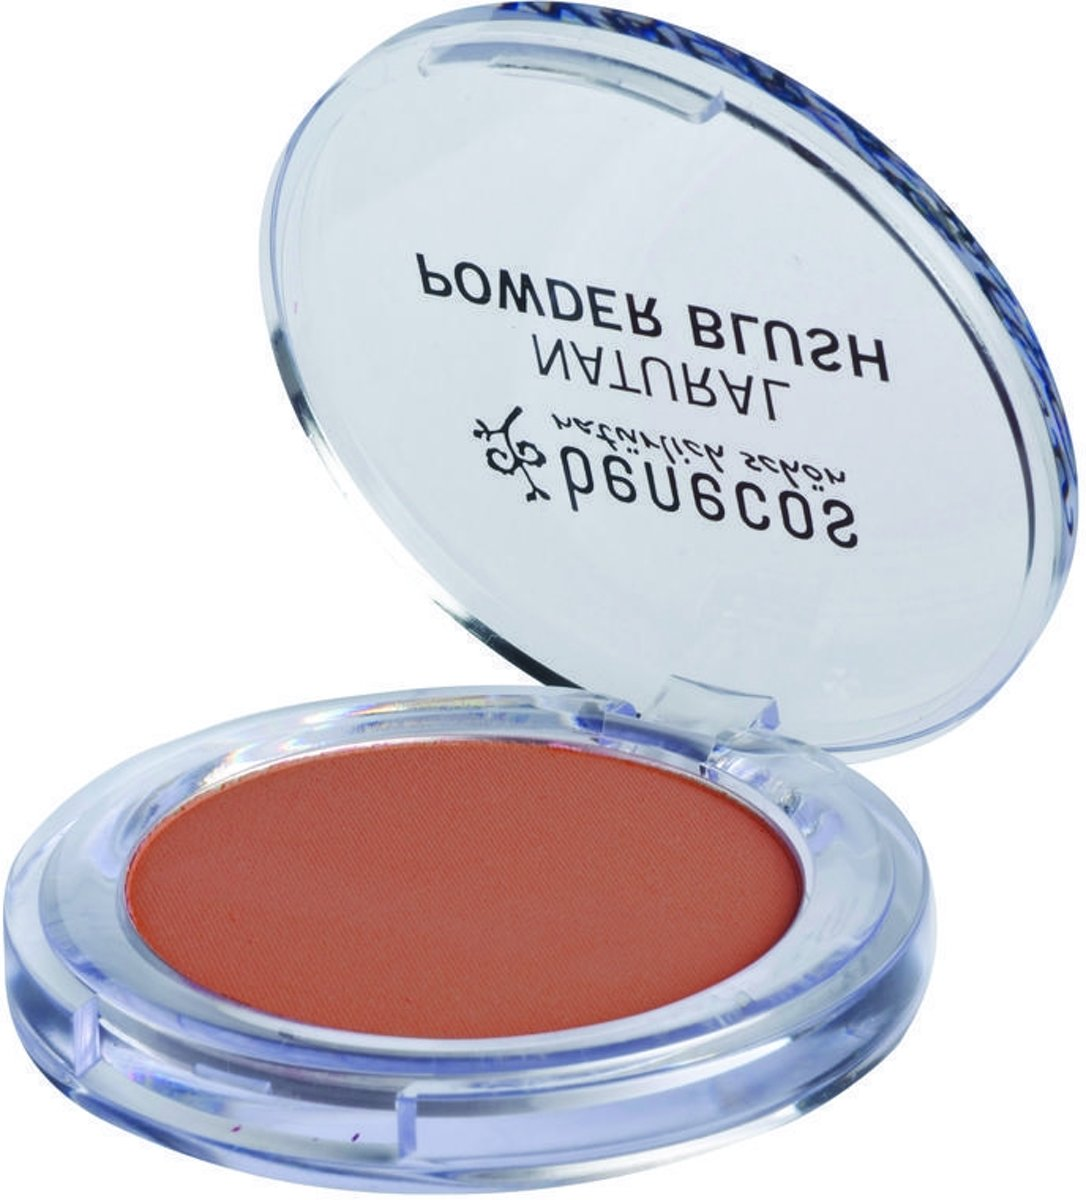 Benecos Toasted Toffee - Bronzer